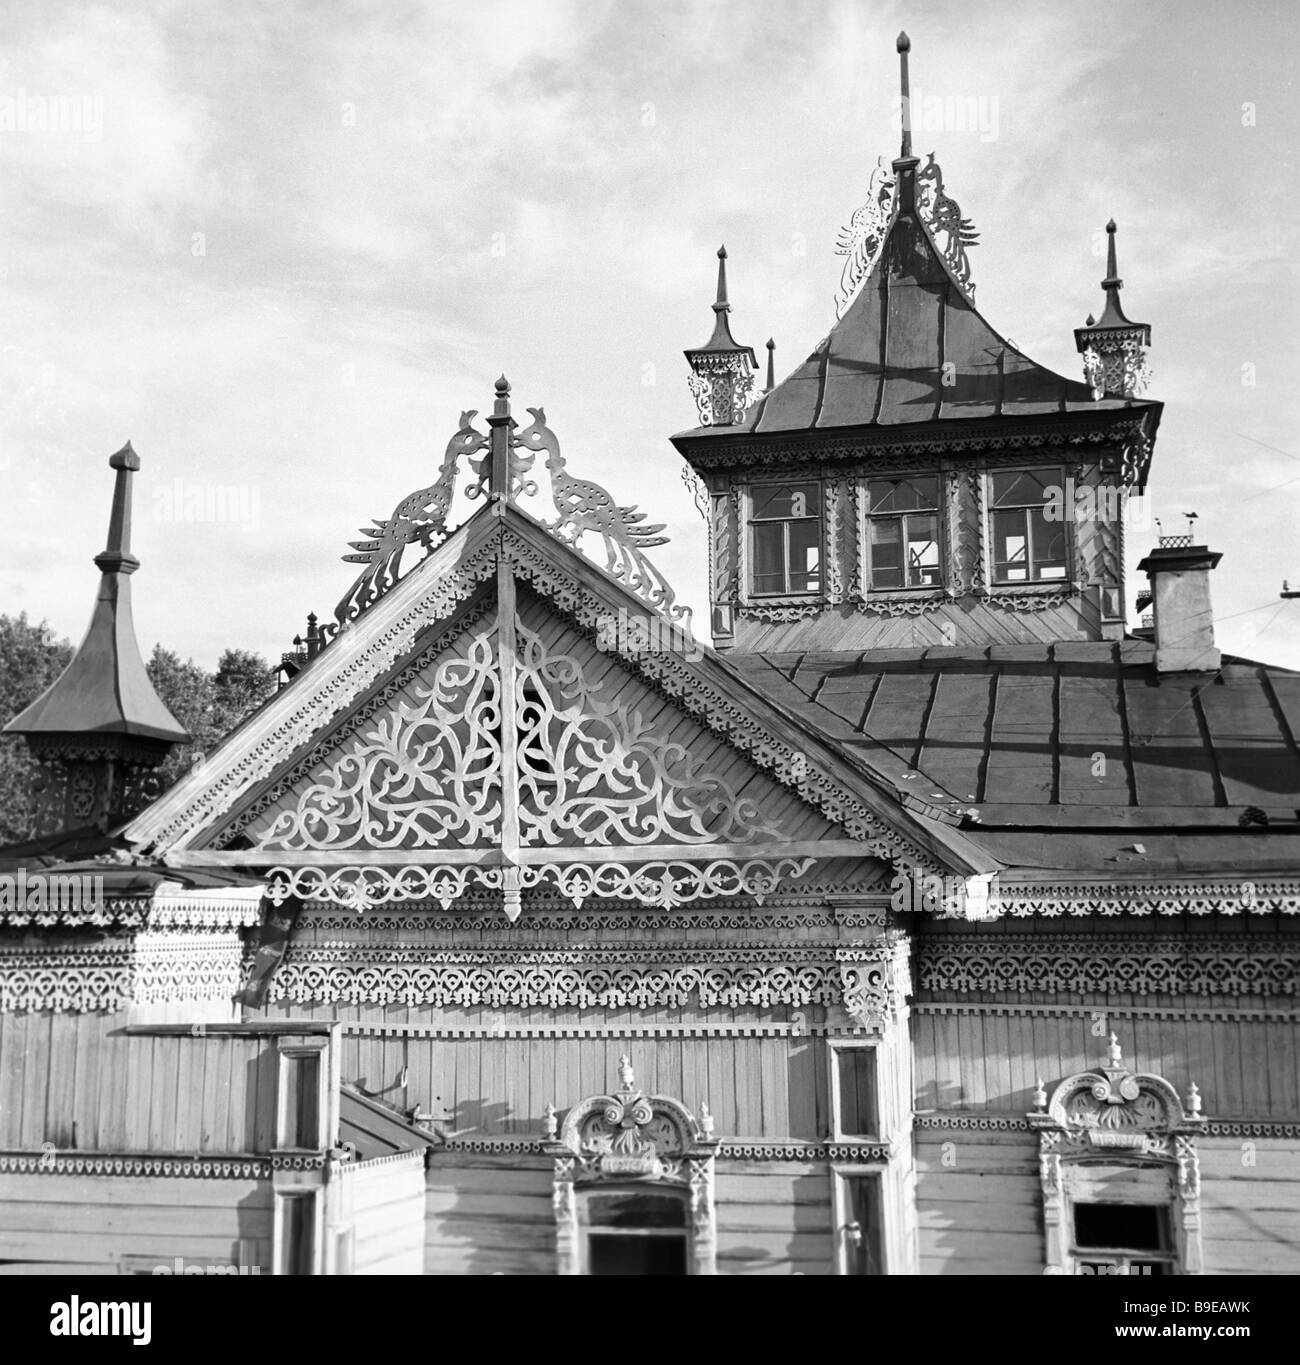 Houses adorned with openwork of abstract firebirds spires and marquees - Stock Image